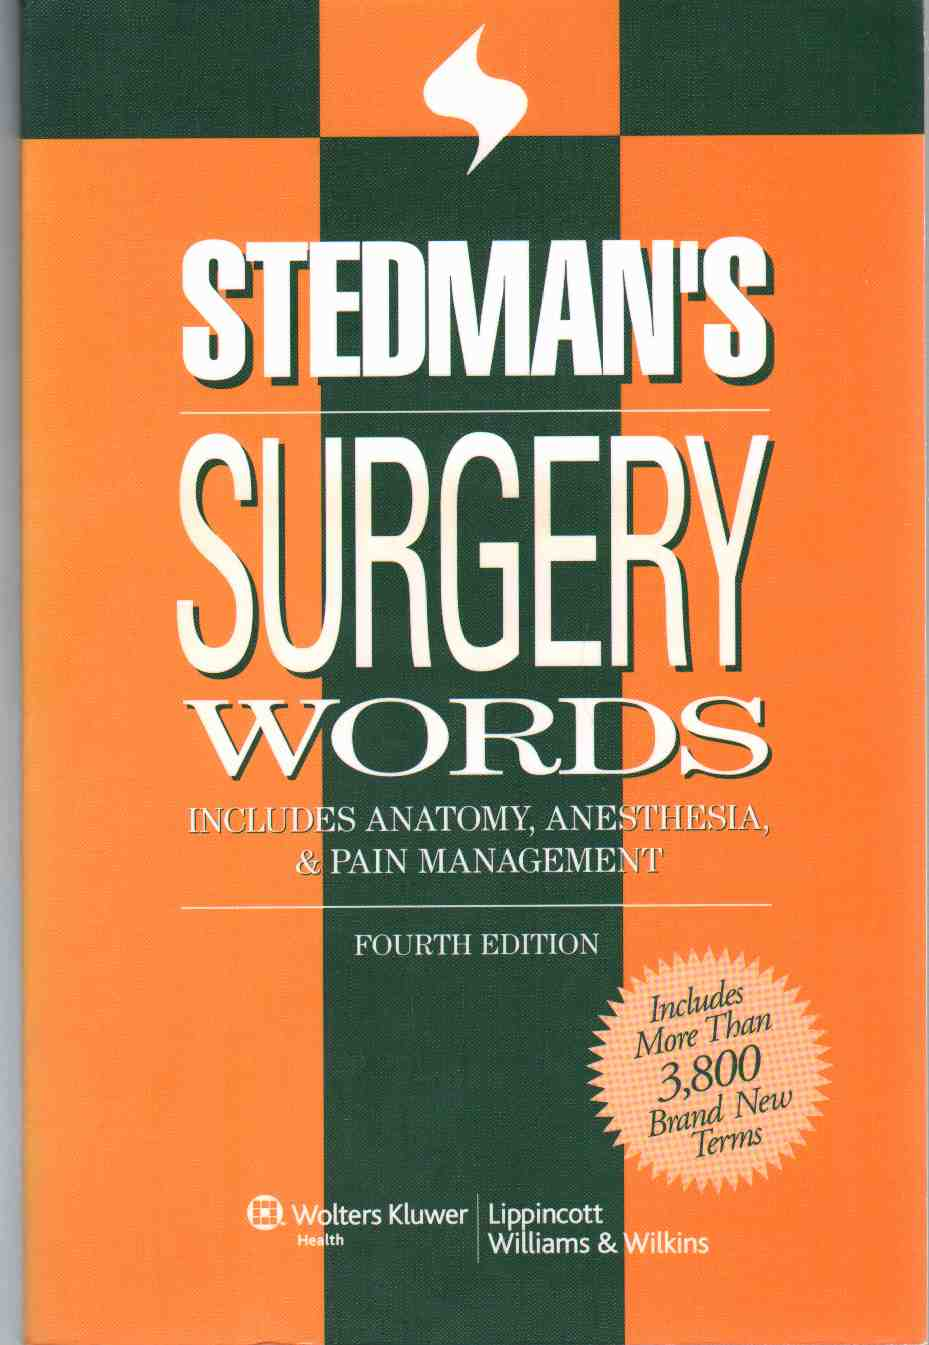 Image for STEDMAN'S SURGERY WORDS Includes Anatomy, Anesthesia & Pain Management